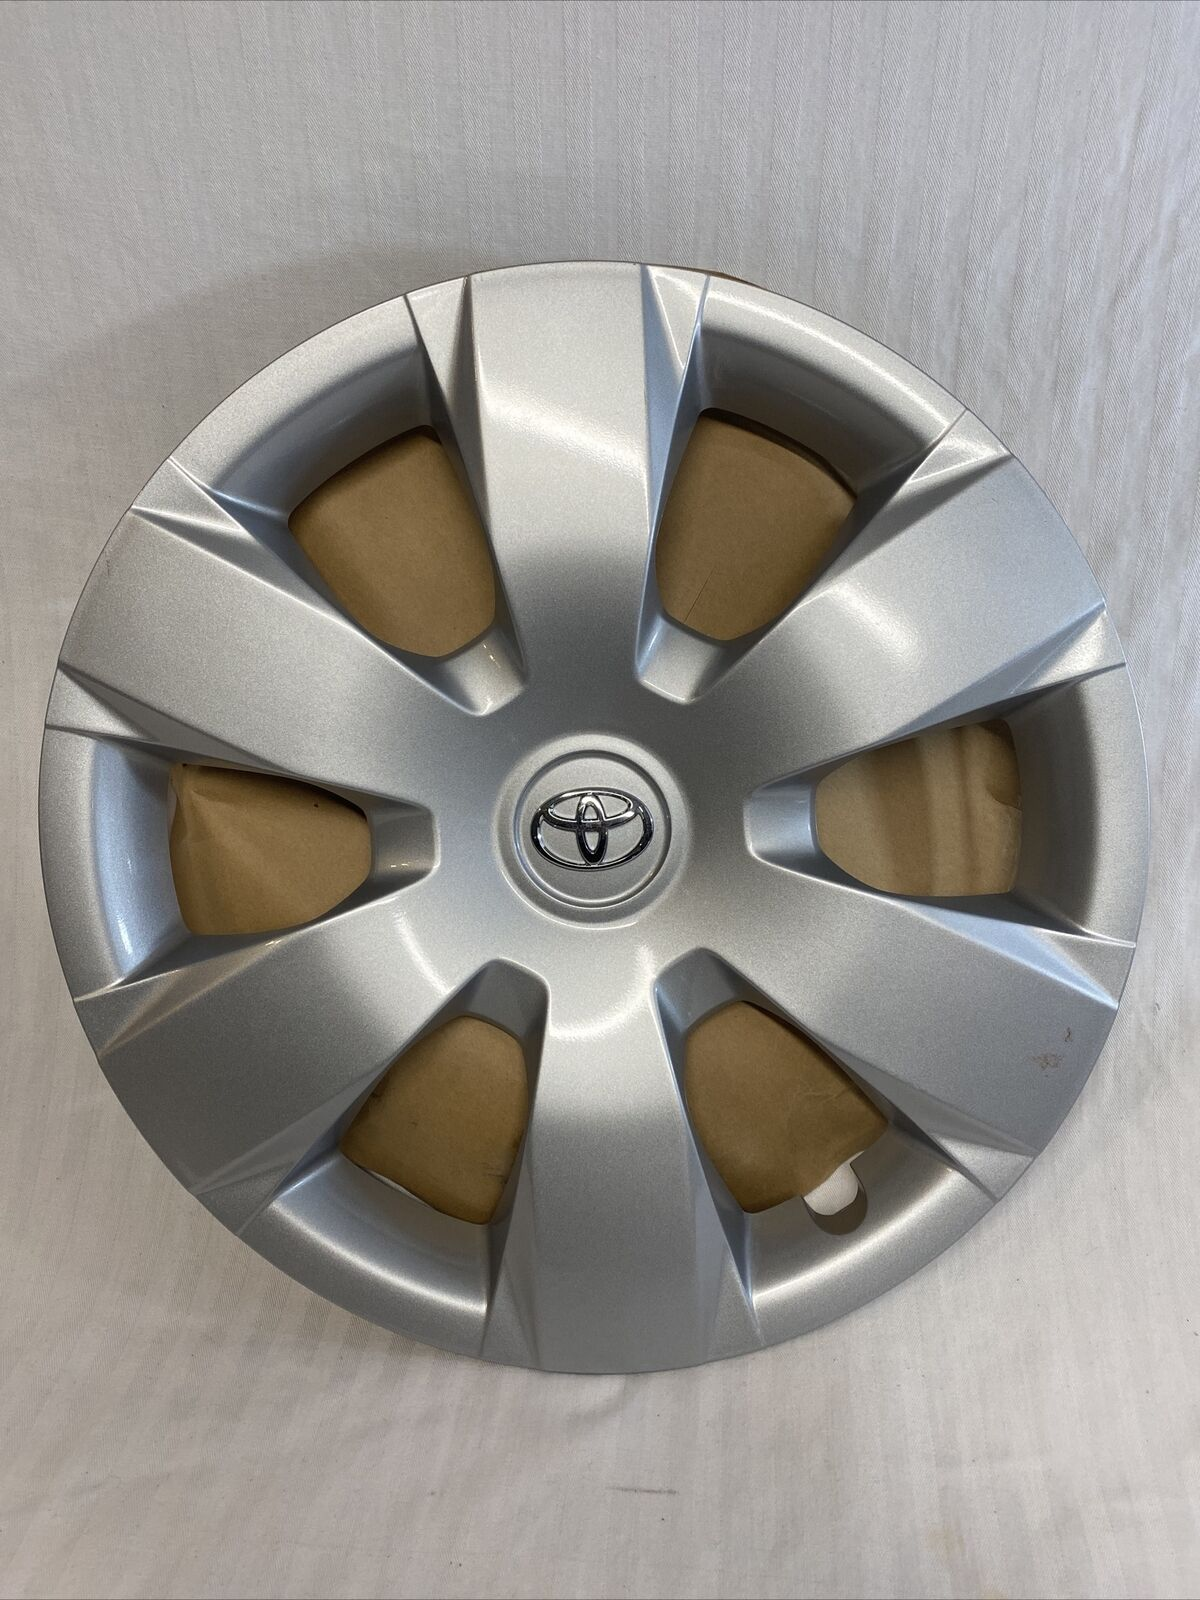 """OEM 06-10 Toyota Camry 16"""" Hubcap 6 spoke Wheel Cover #42602-06010 Free S/&H"""